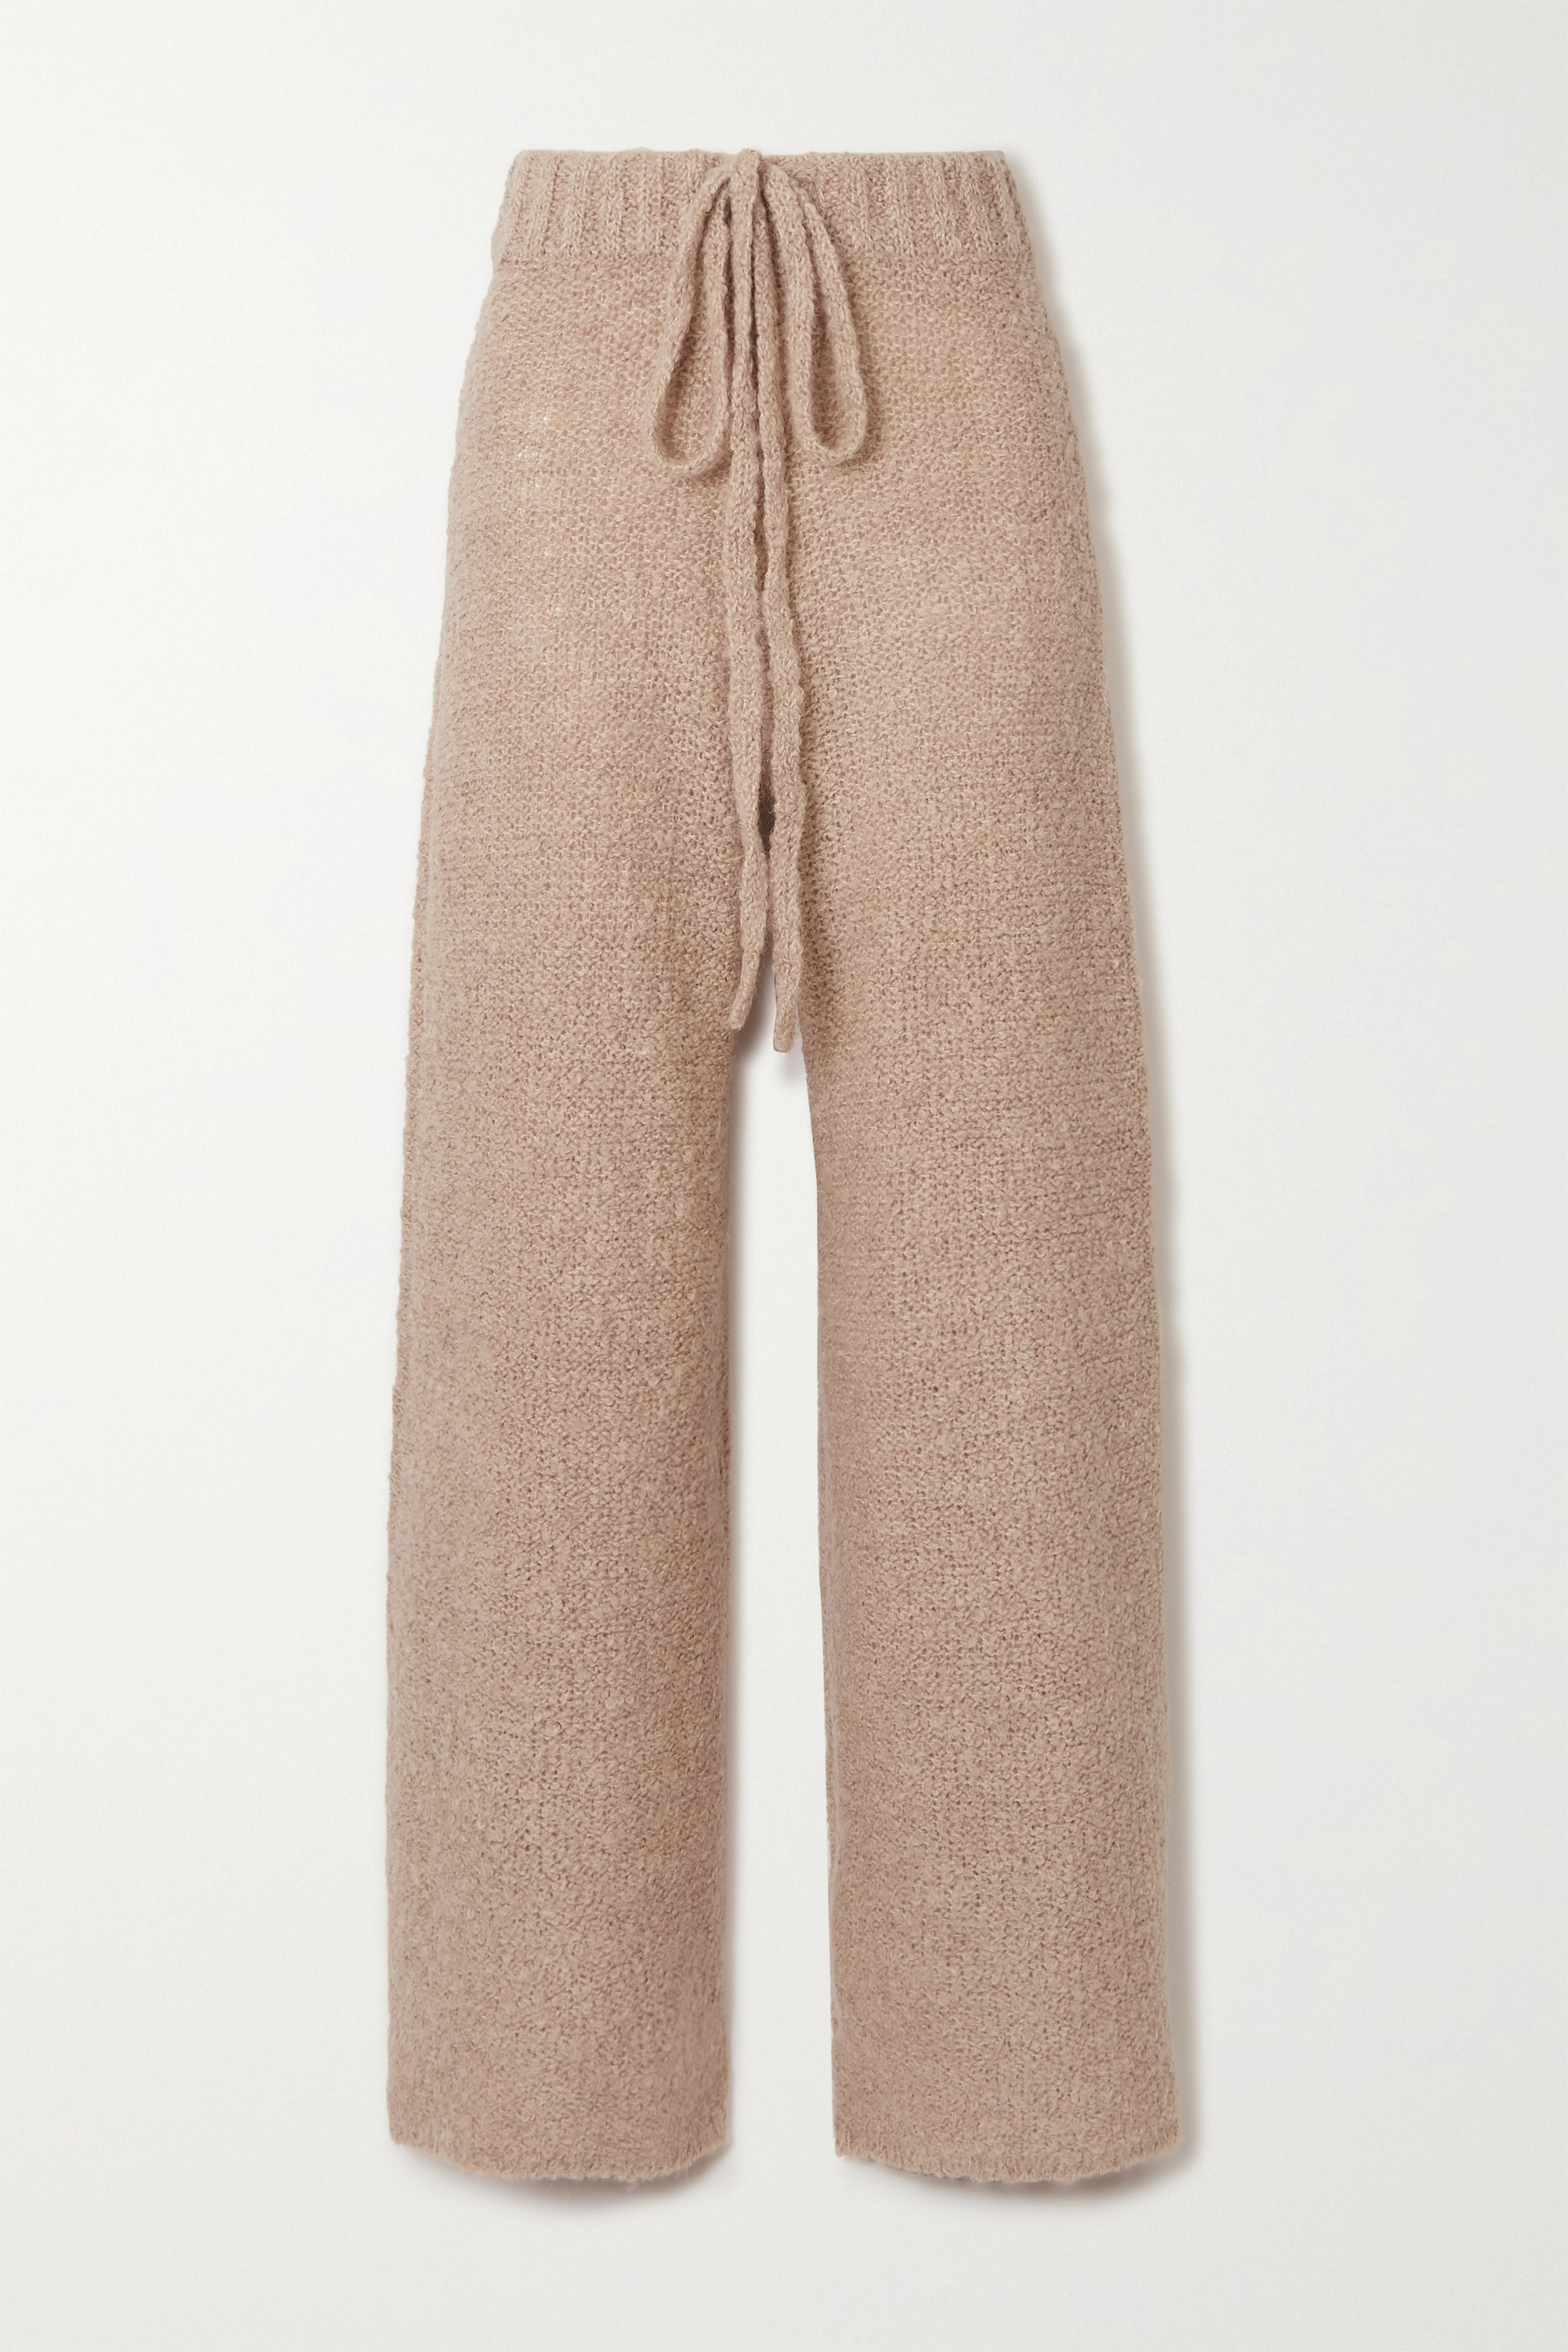 STAUD Chong bouclé wide-leg pants